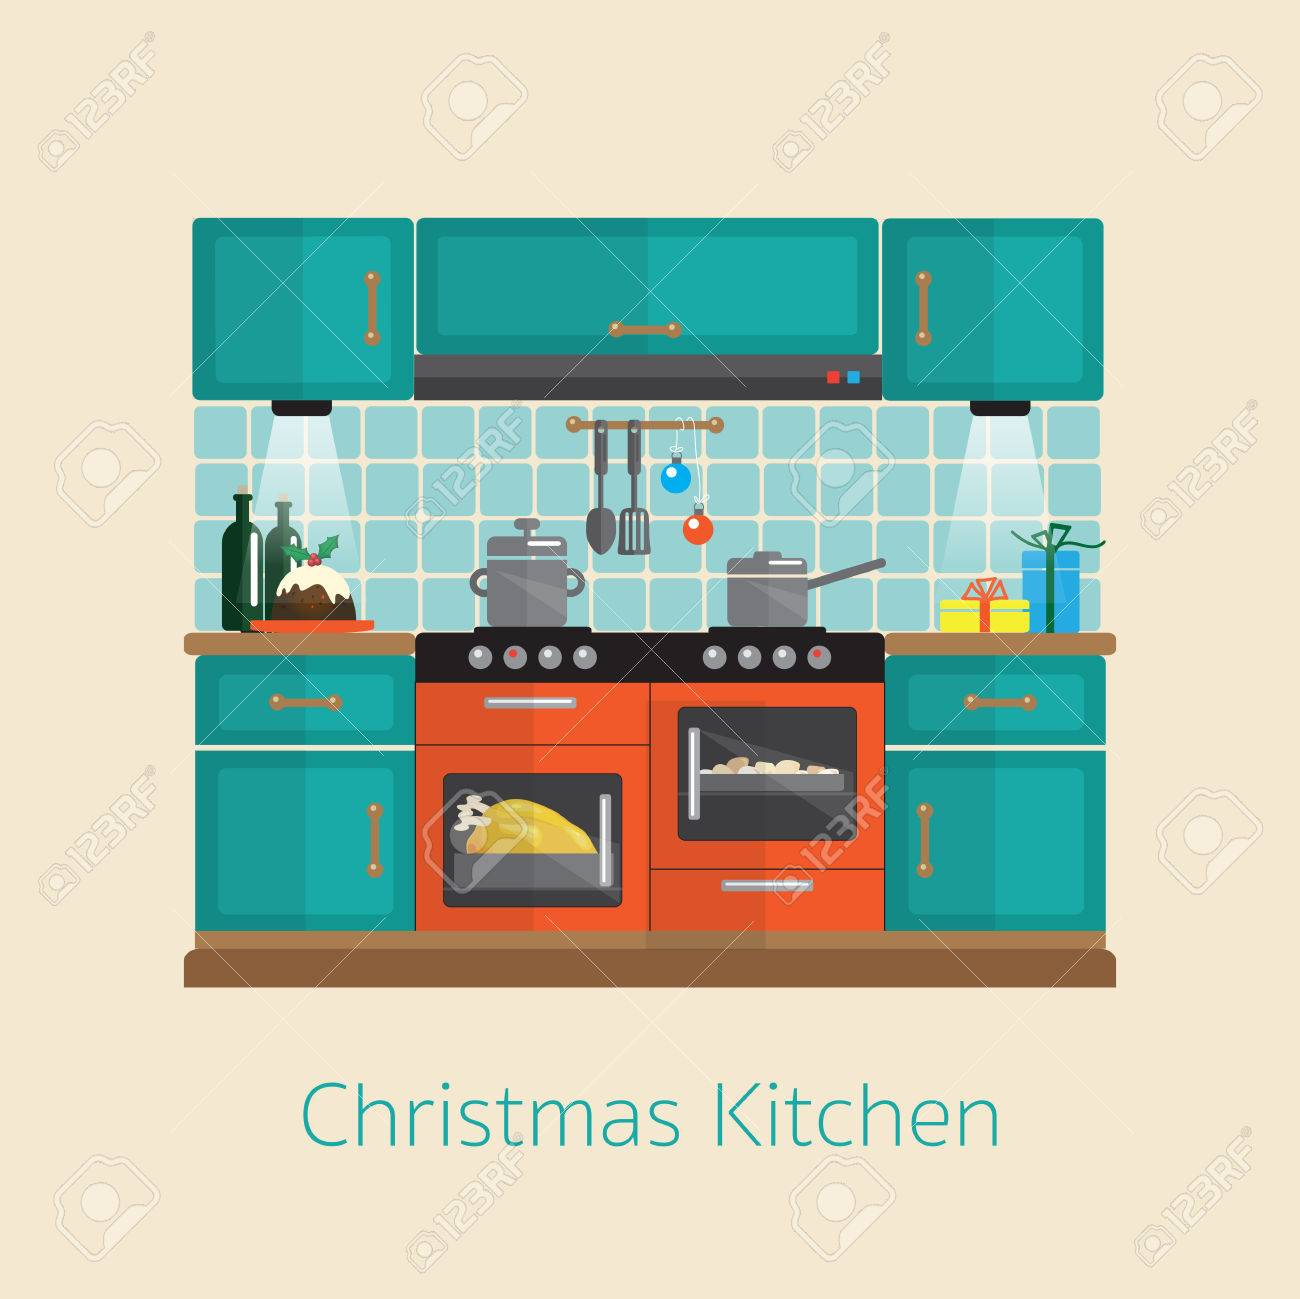 Cooking Christmas Dinner. Flat Style Kitchen Design During The ...